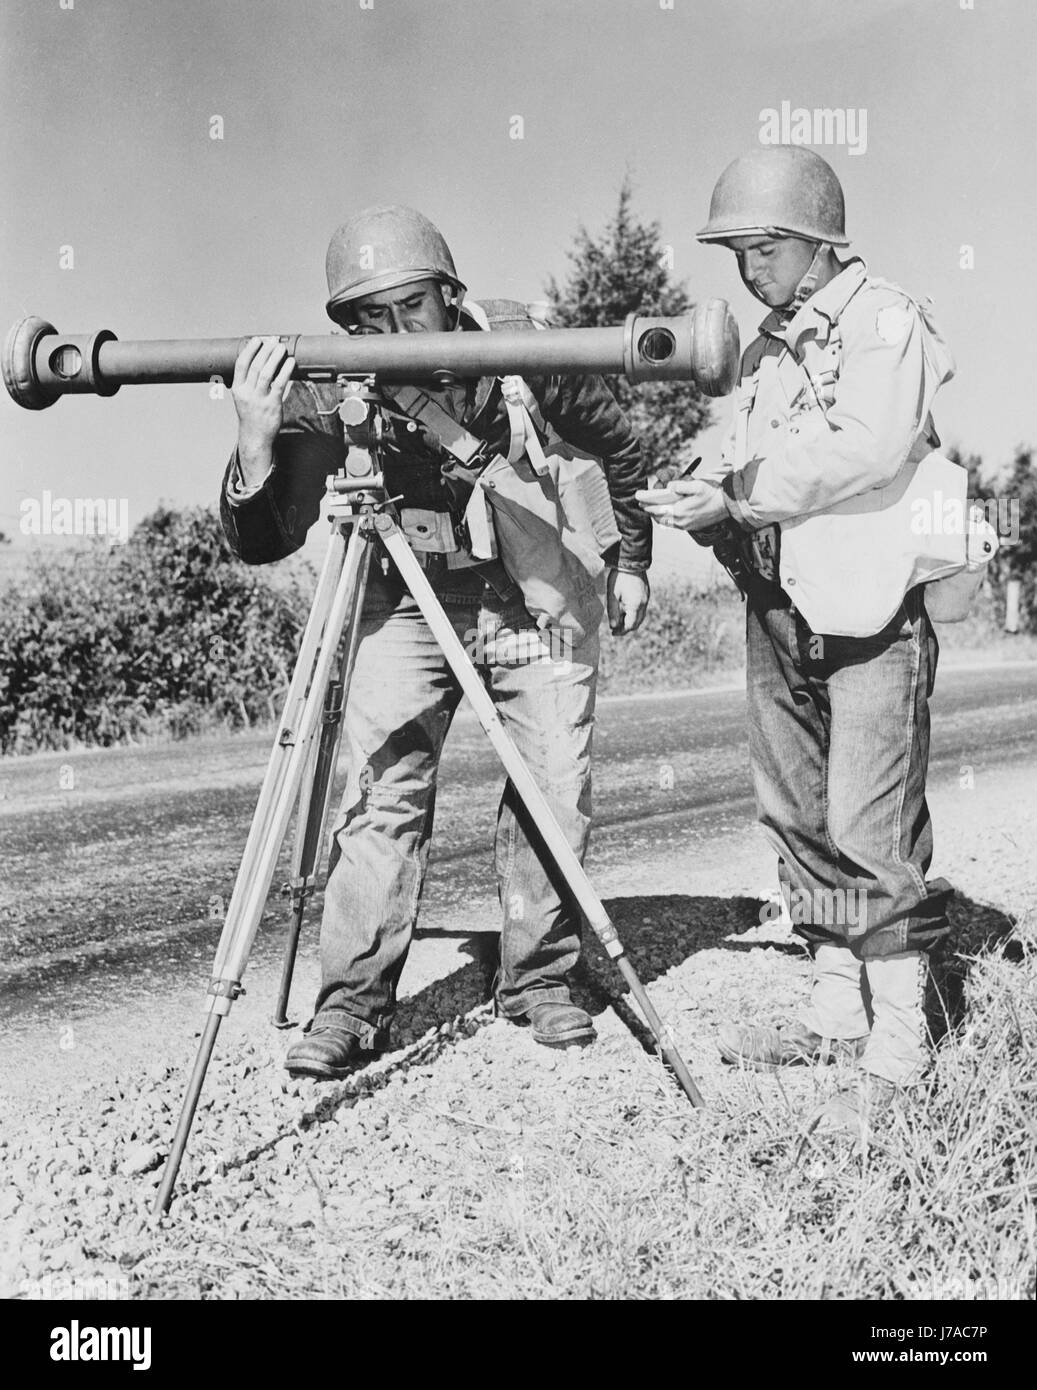 American soldiers sight through a rangefinder, circa 1942. - Stock Image